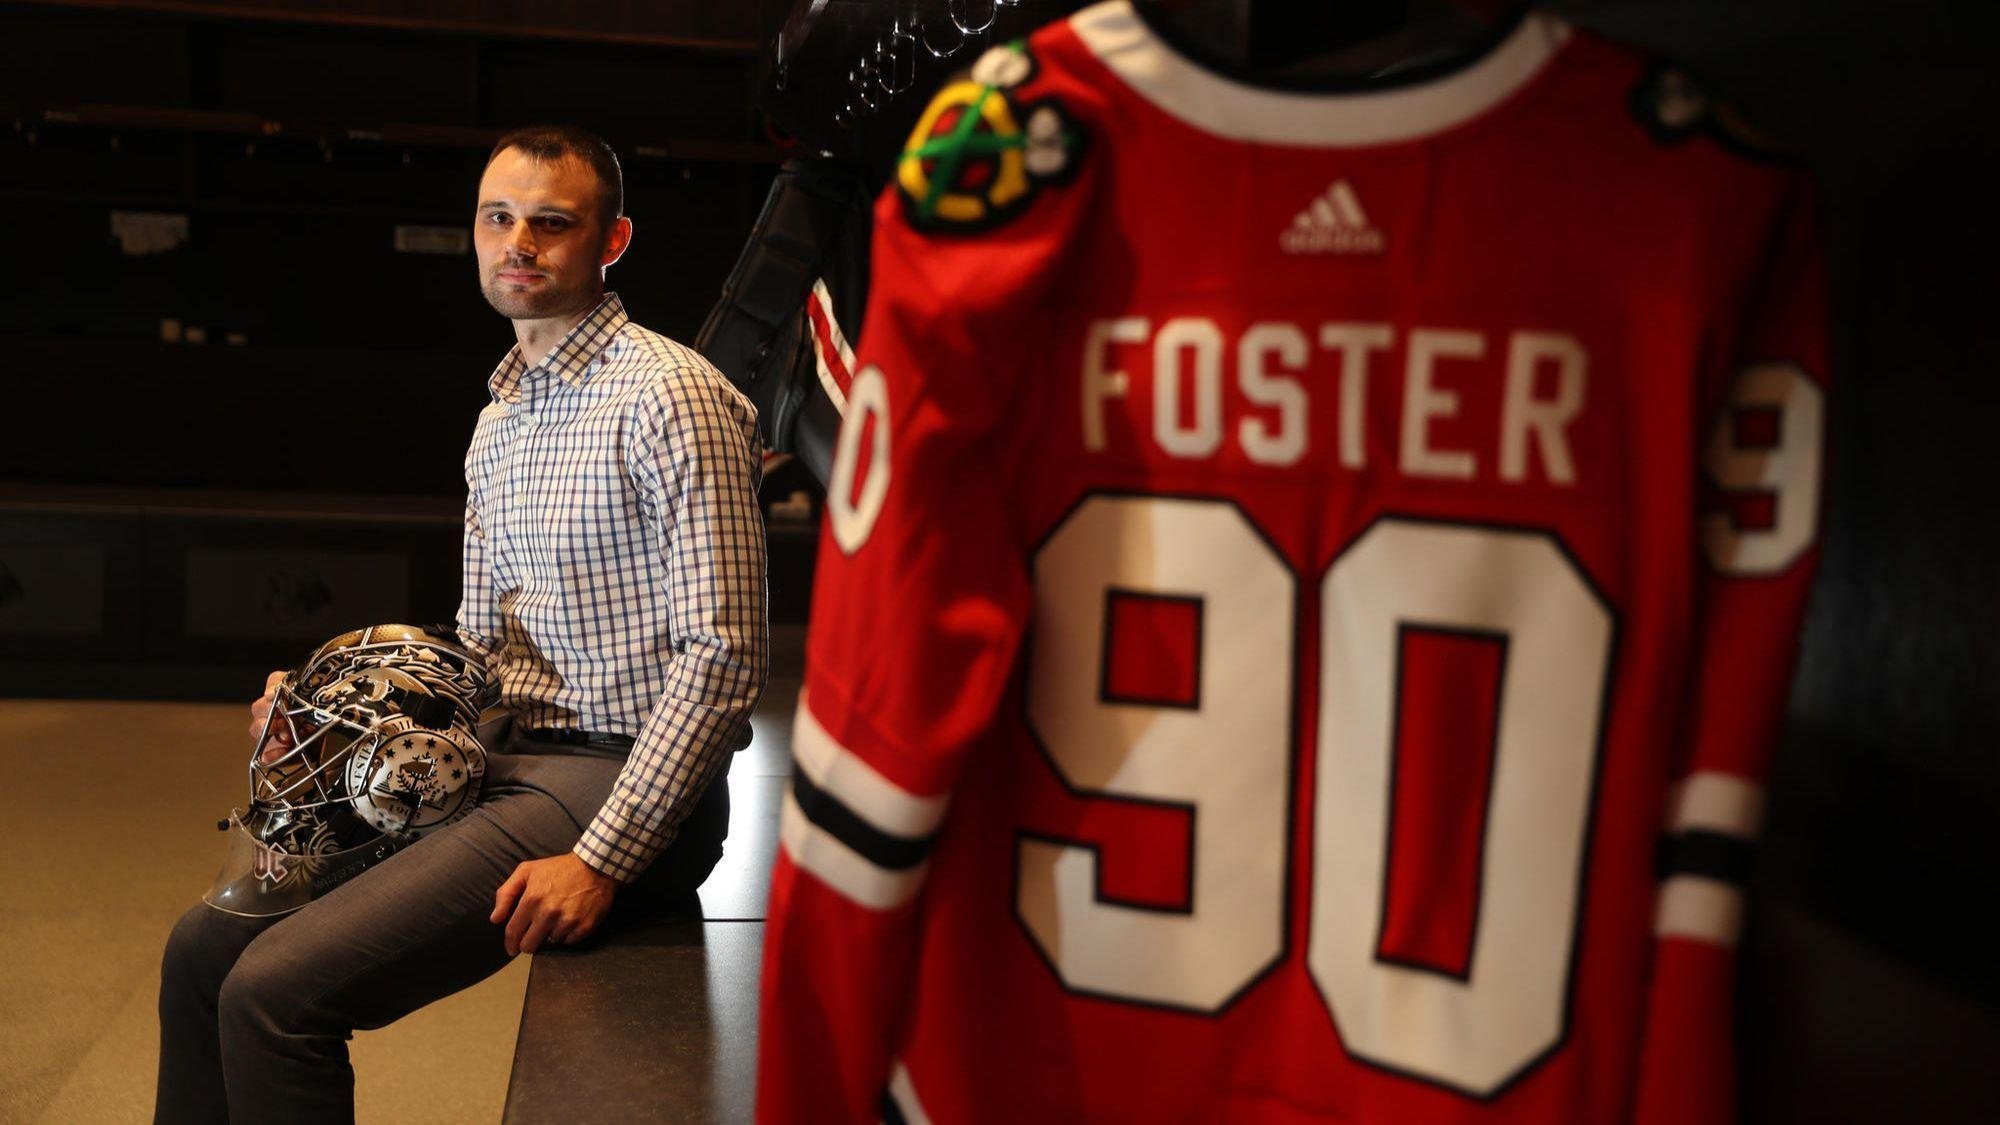 Scott Foster Accountant Who For One Night Starred In